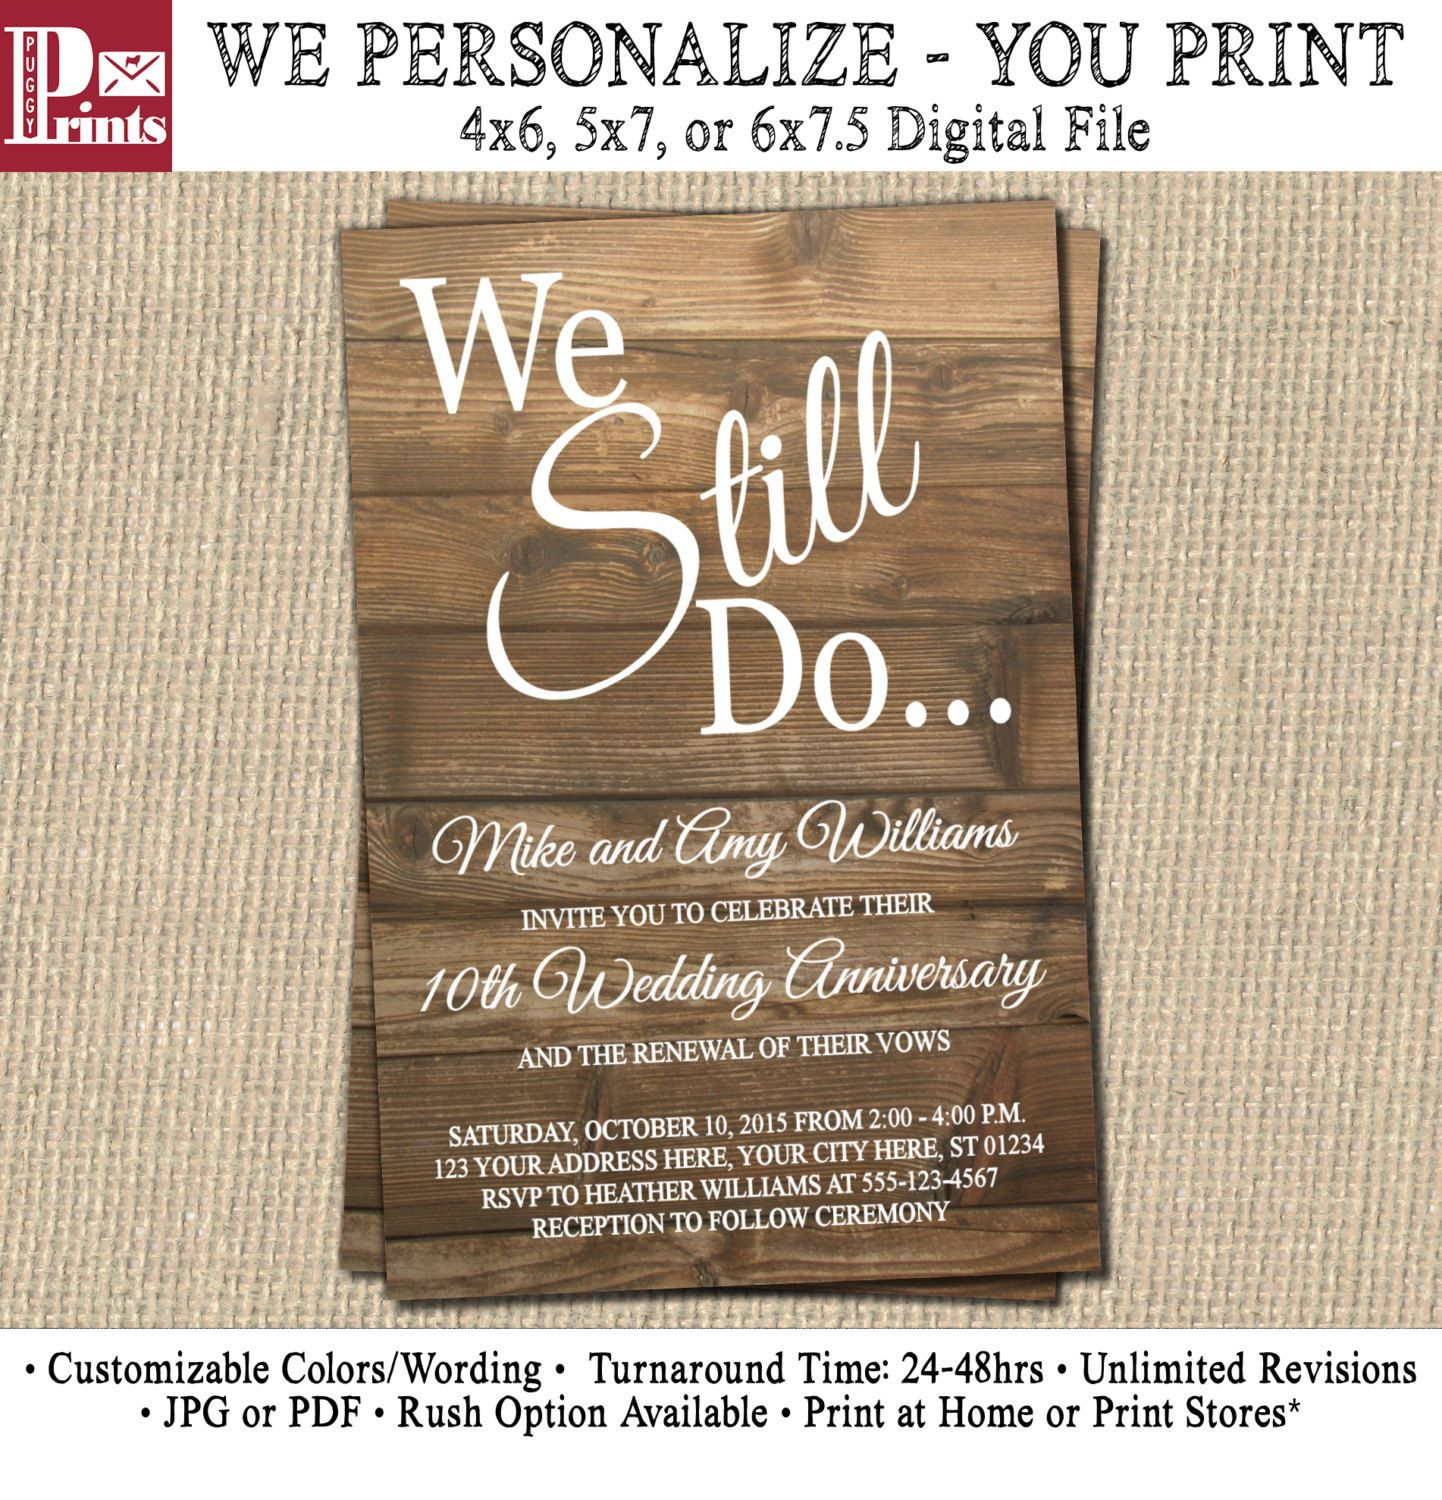 Vow Renewal Invitation - Wedding Anniversary Invitations - Rustic ...